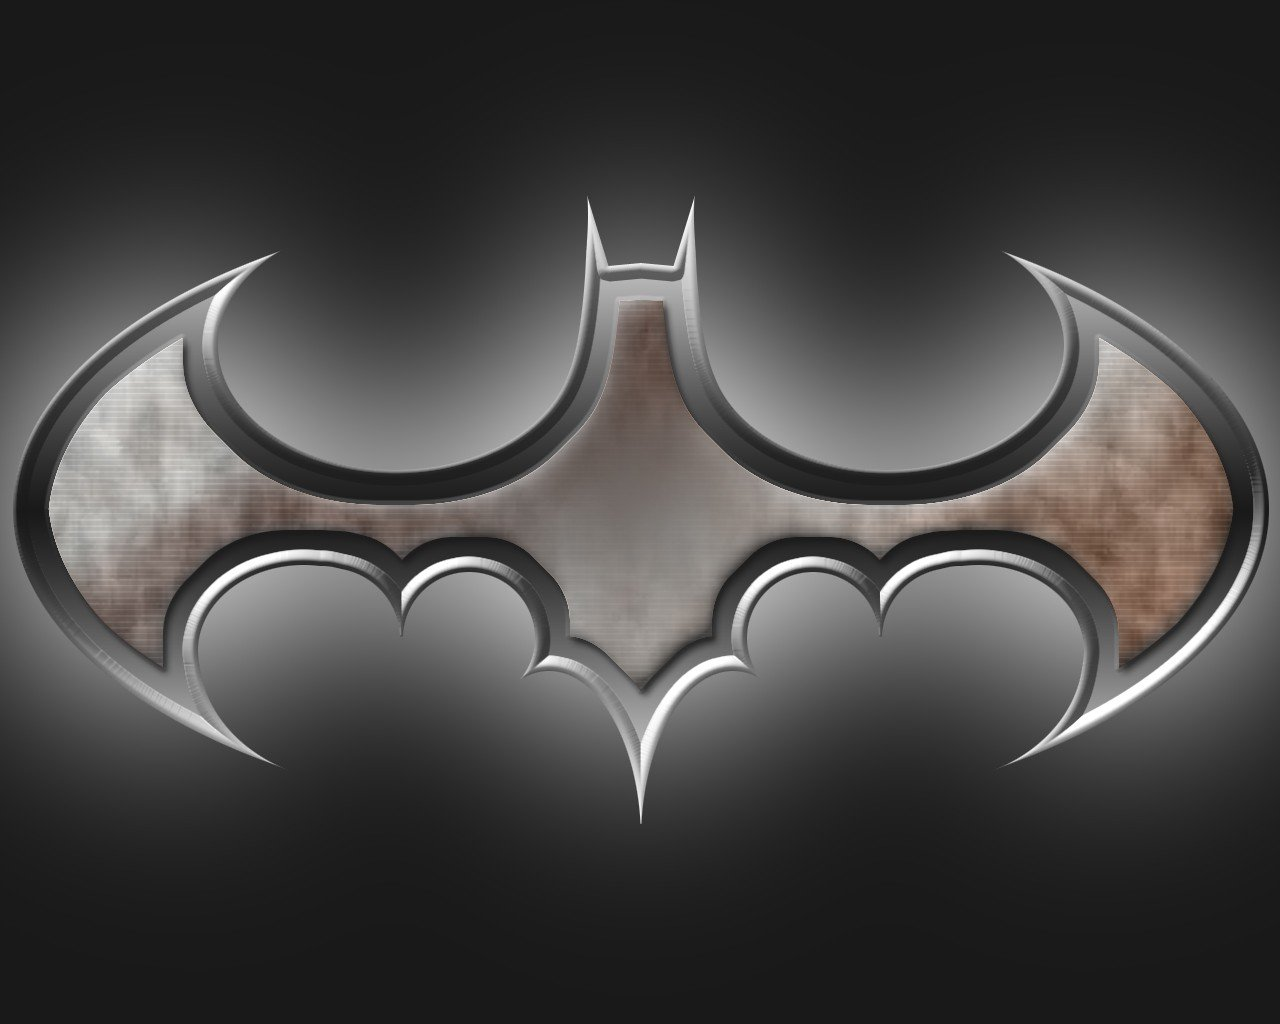 Batman Logo Wallpapers Hd Images amp Pictures   Becuo 1280x1024